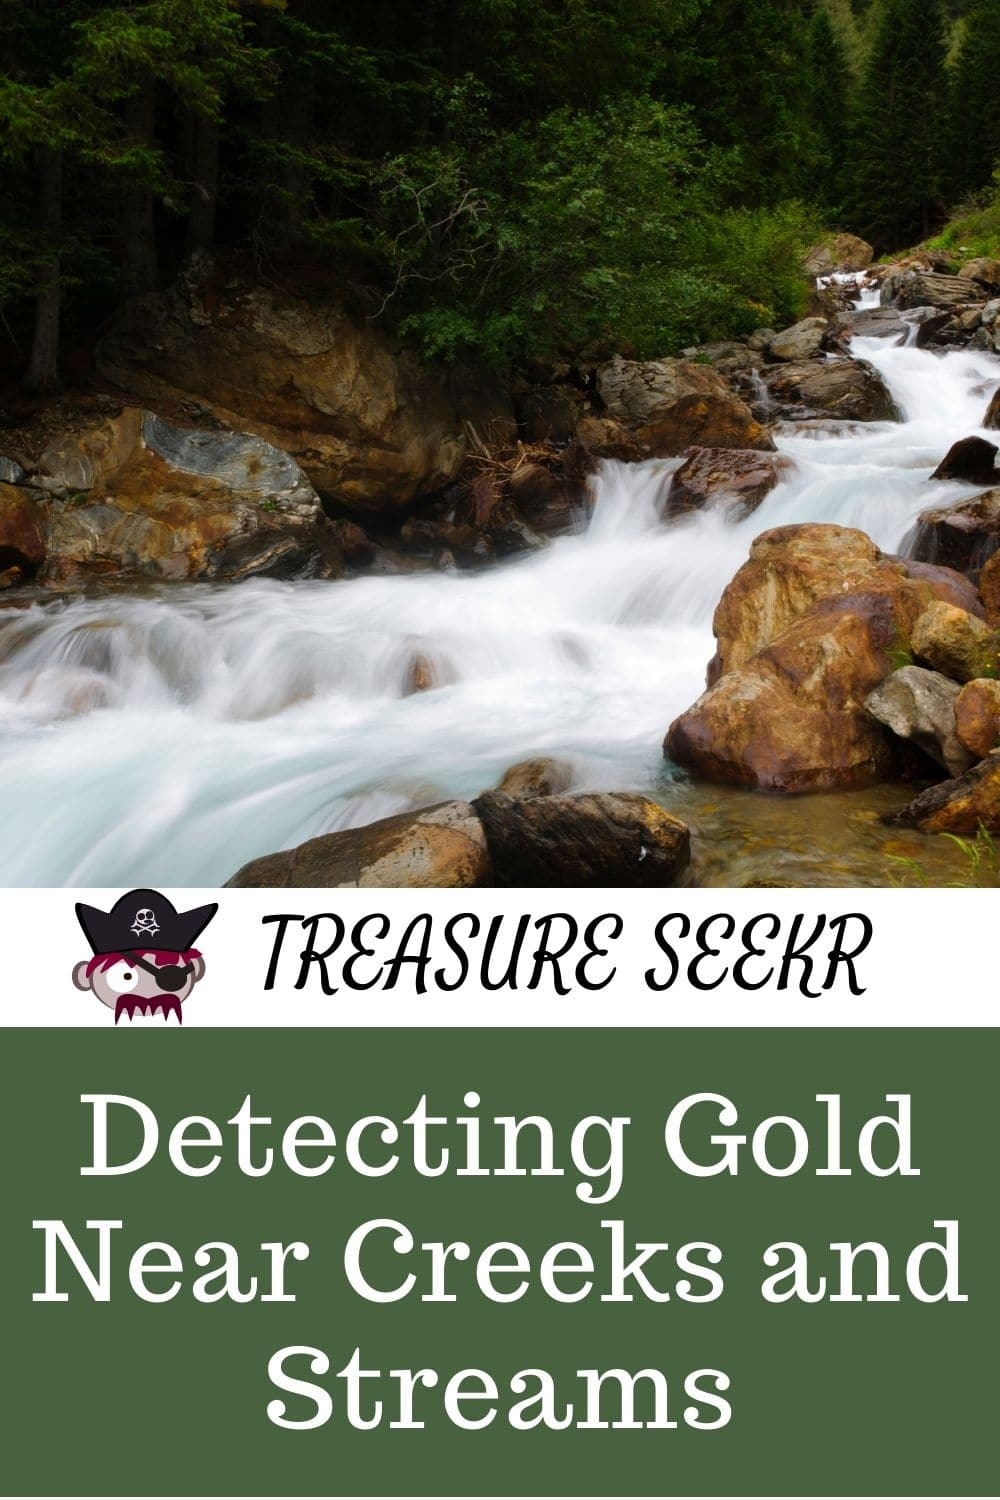 Detecting Gold Near Creeks and Streams